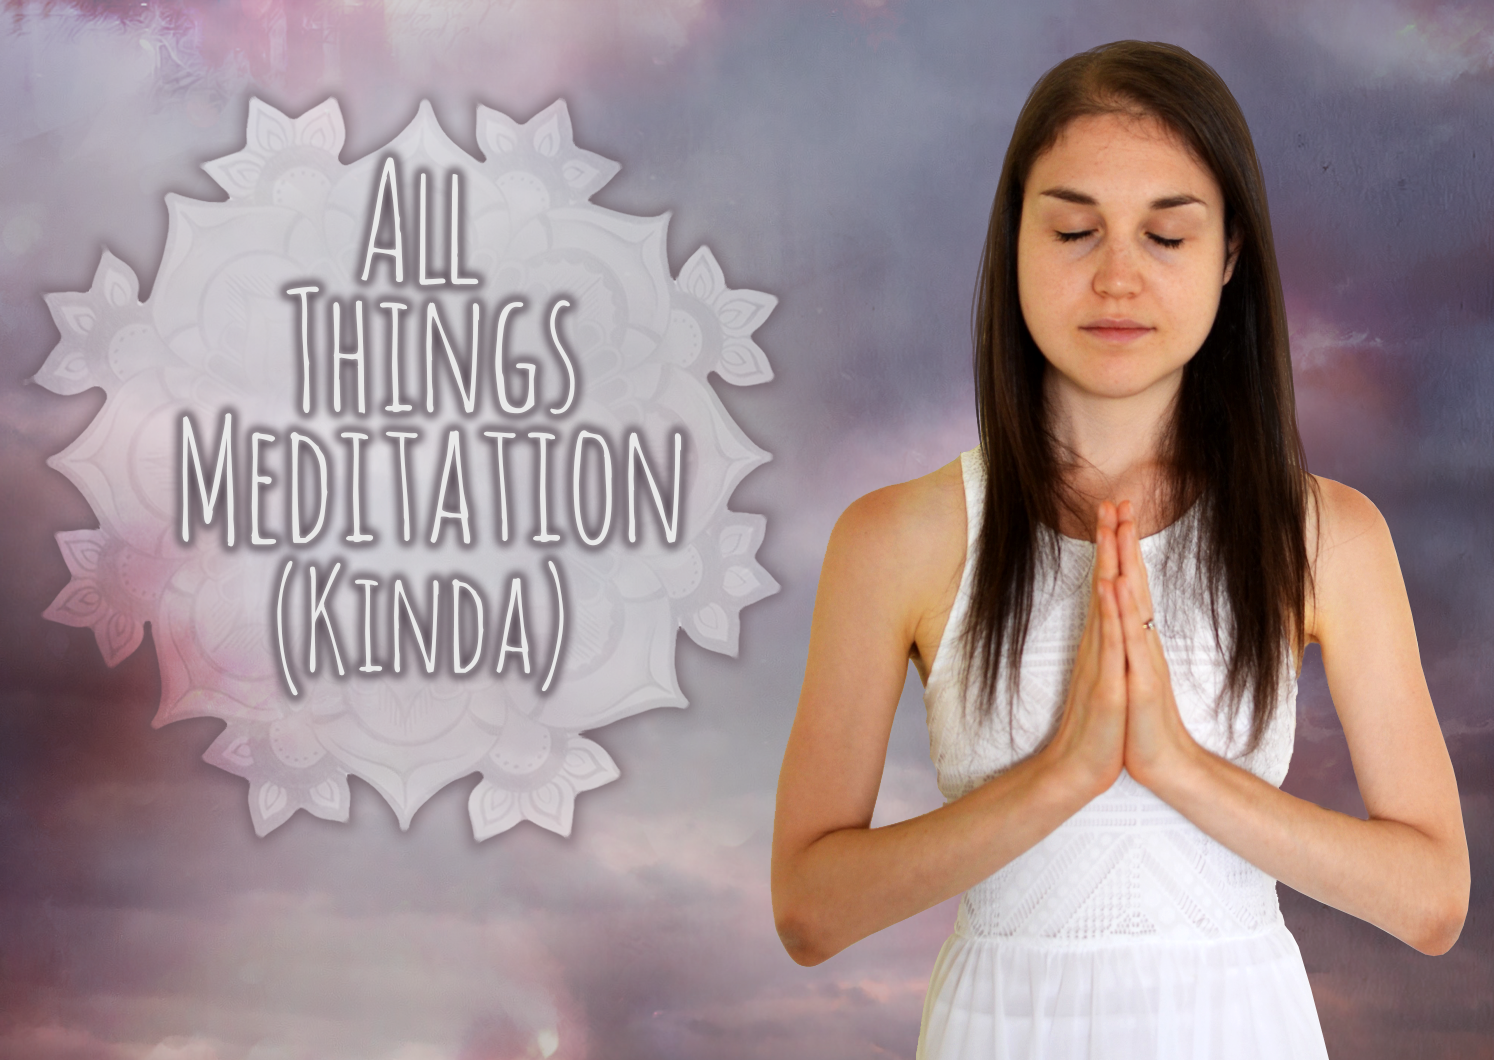 All Things Meditation